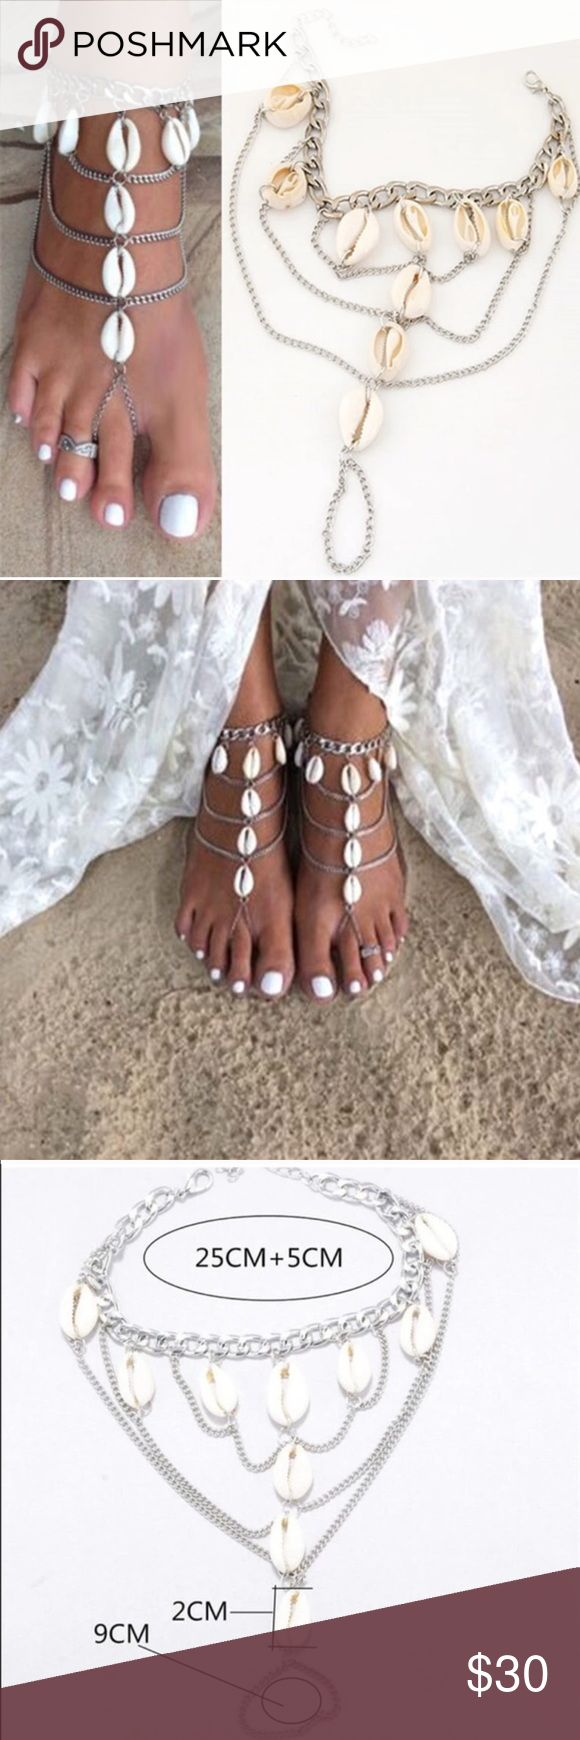 Shell Barefoot Wedding Sandals Foot Jewelry Pair A lovely pair of Bohemian silver barefoot sandal with layers of shell and chain embellishment.  Perfect boho body jewelry for those warm boho summer beach days or beach weddings!  This listing is for a pair.  See our other styles too!   We ship fast with a free NWT gift!   (G2) Jewelry #fastweddingplanning